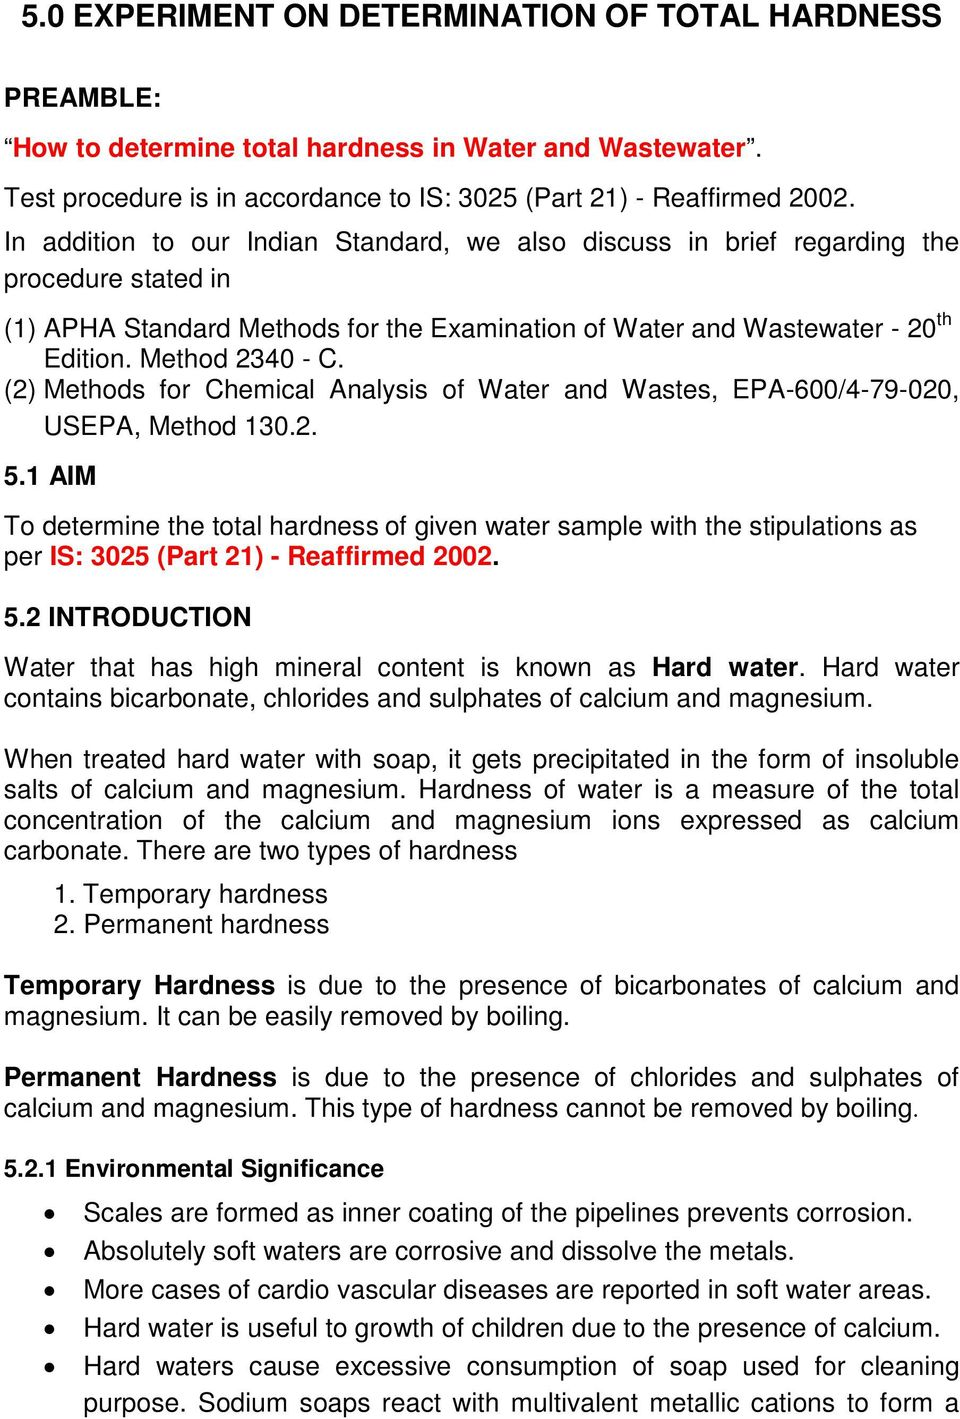 what causes temporary and permanent hardness of water